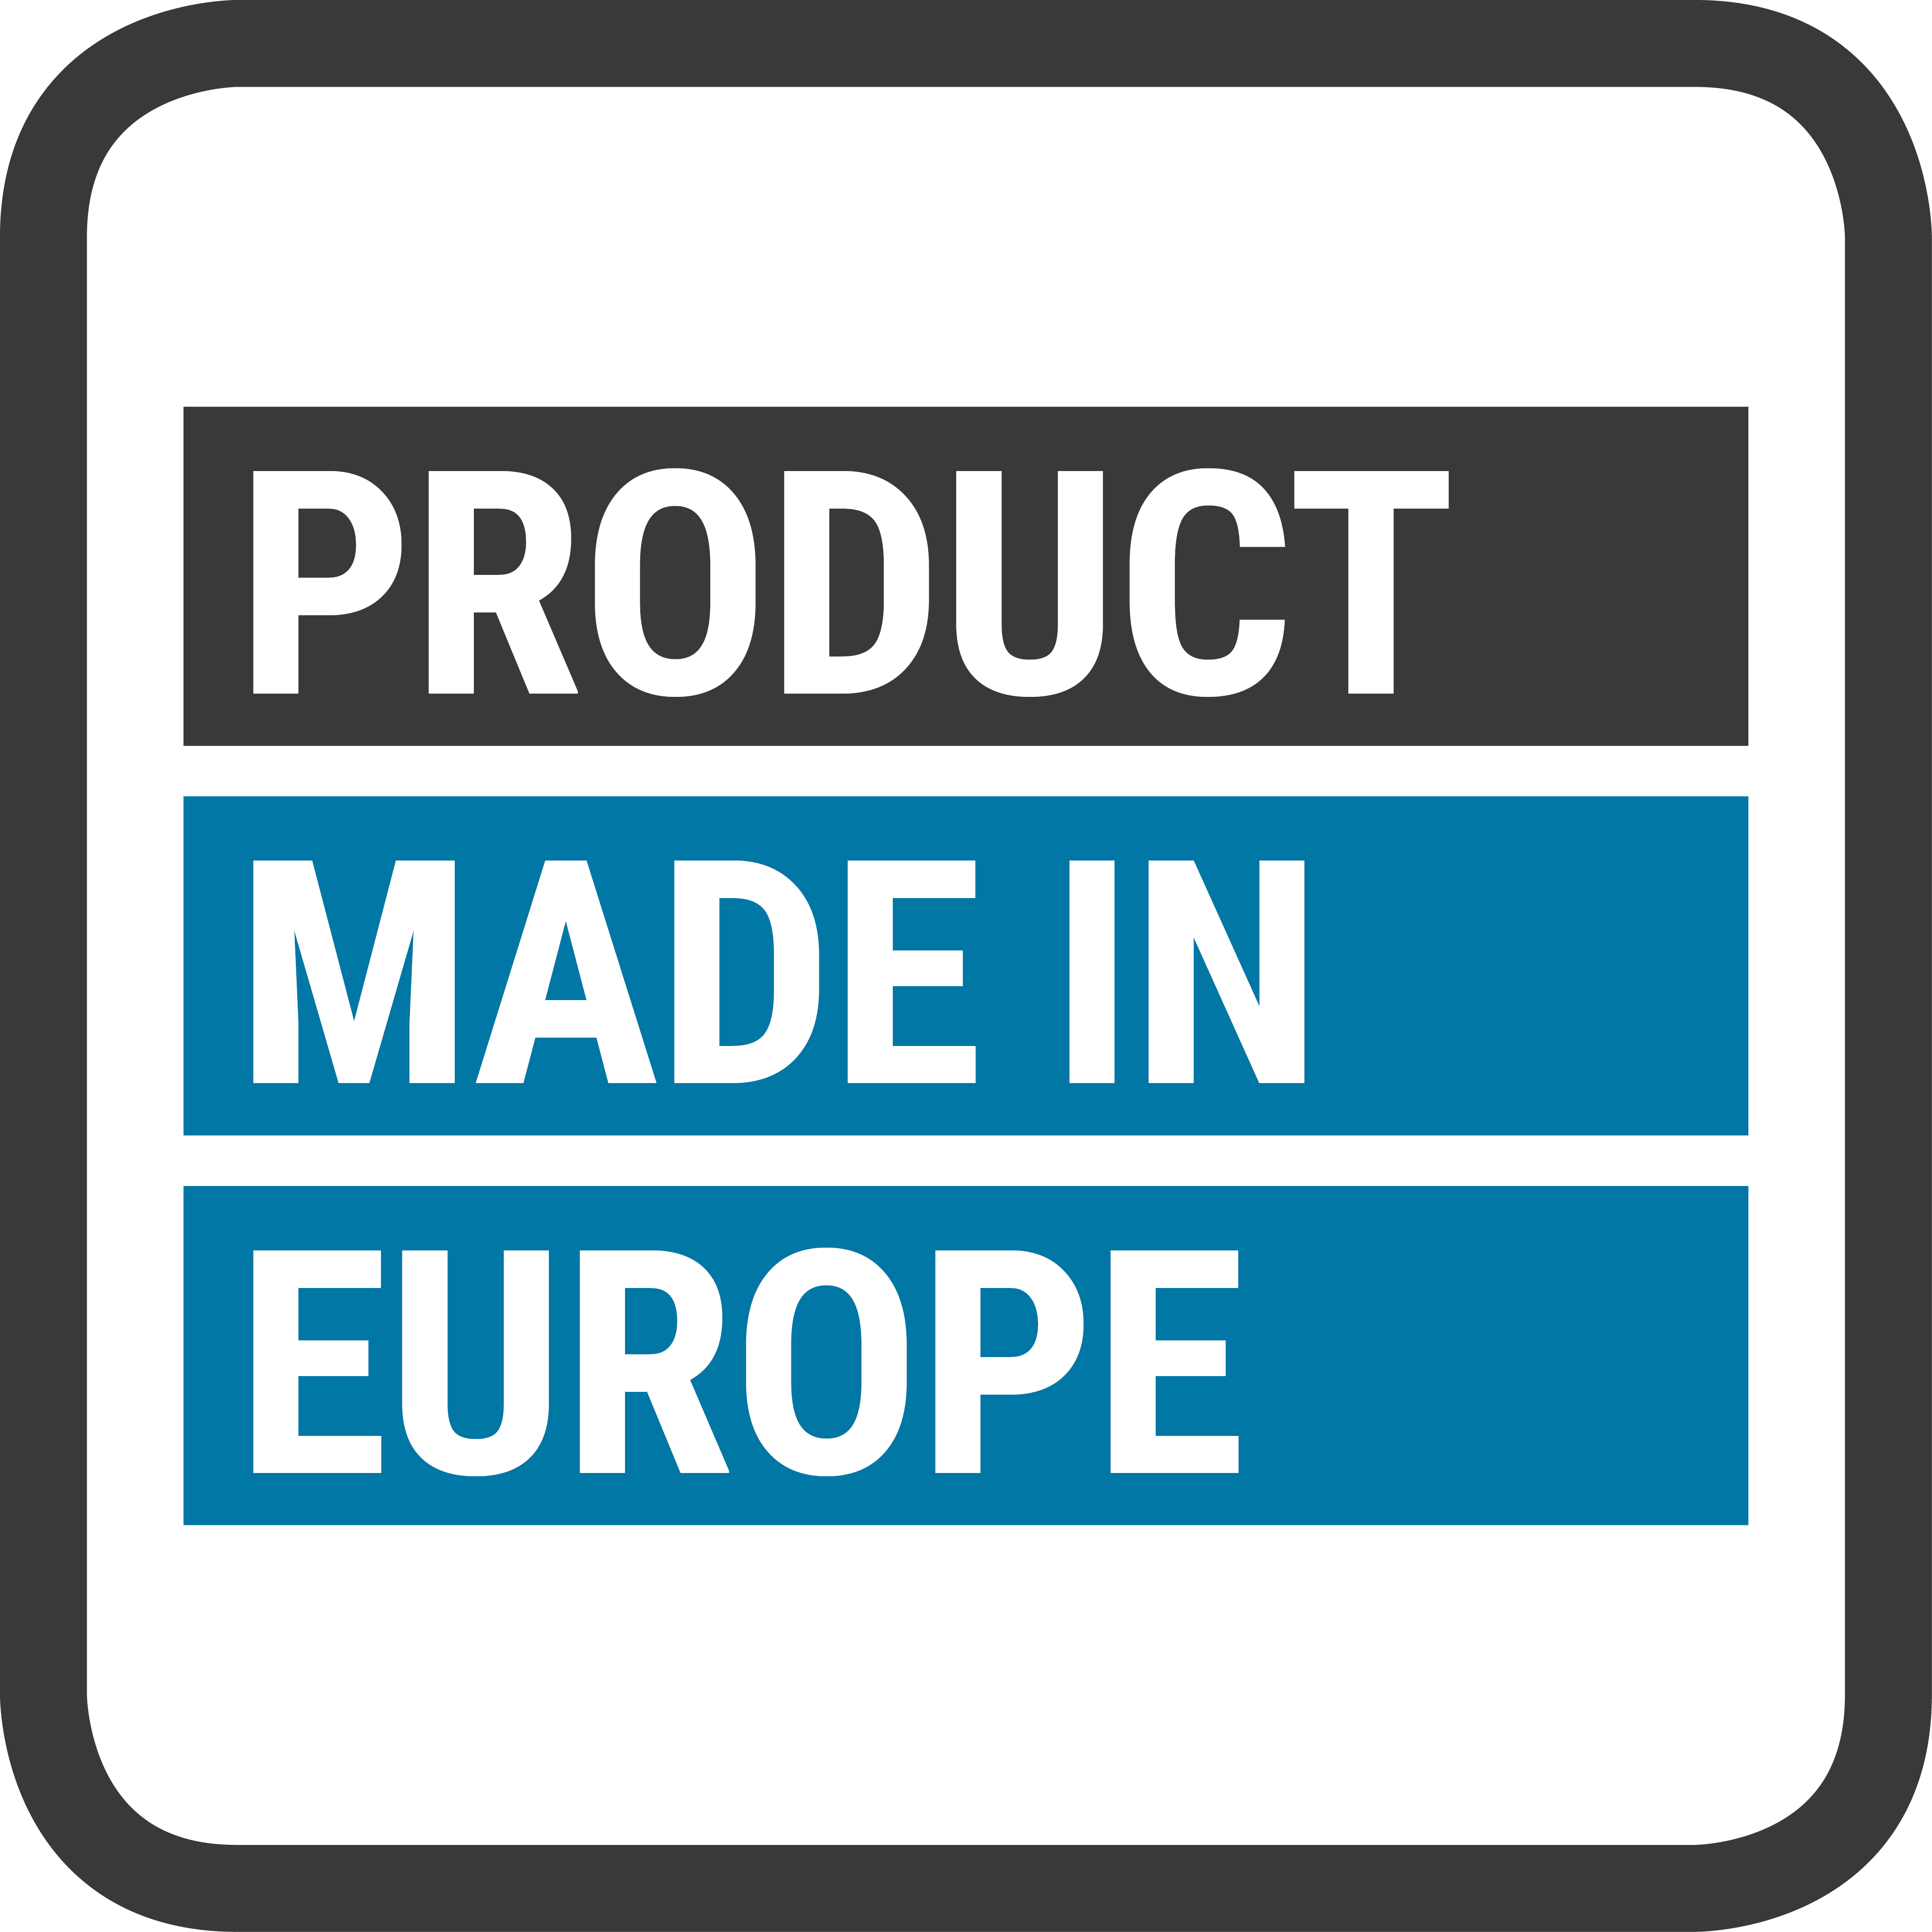 Product Made in Europe